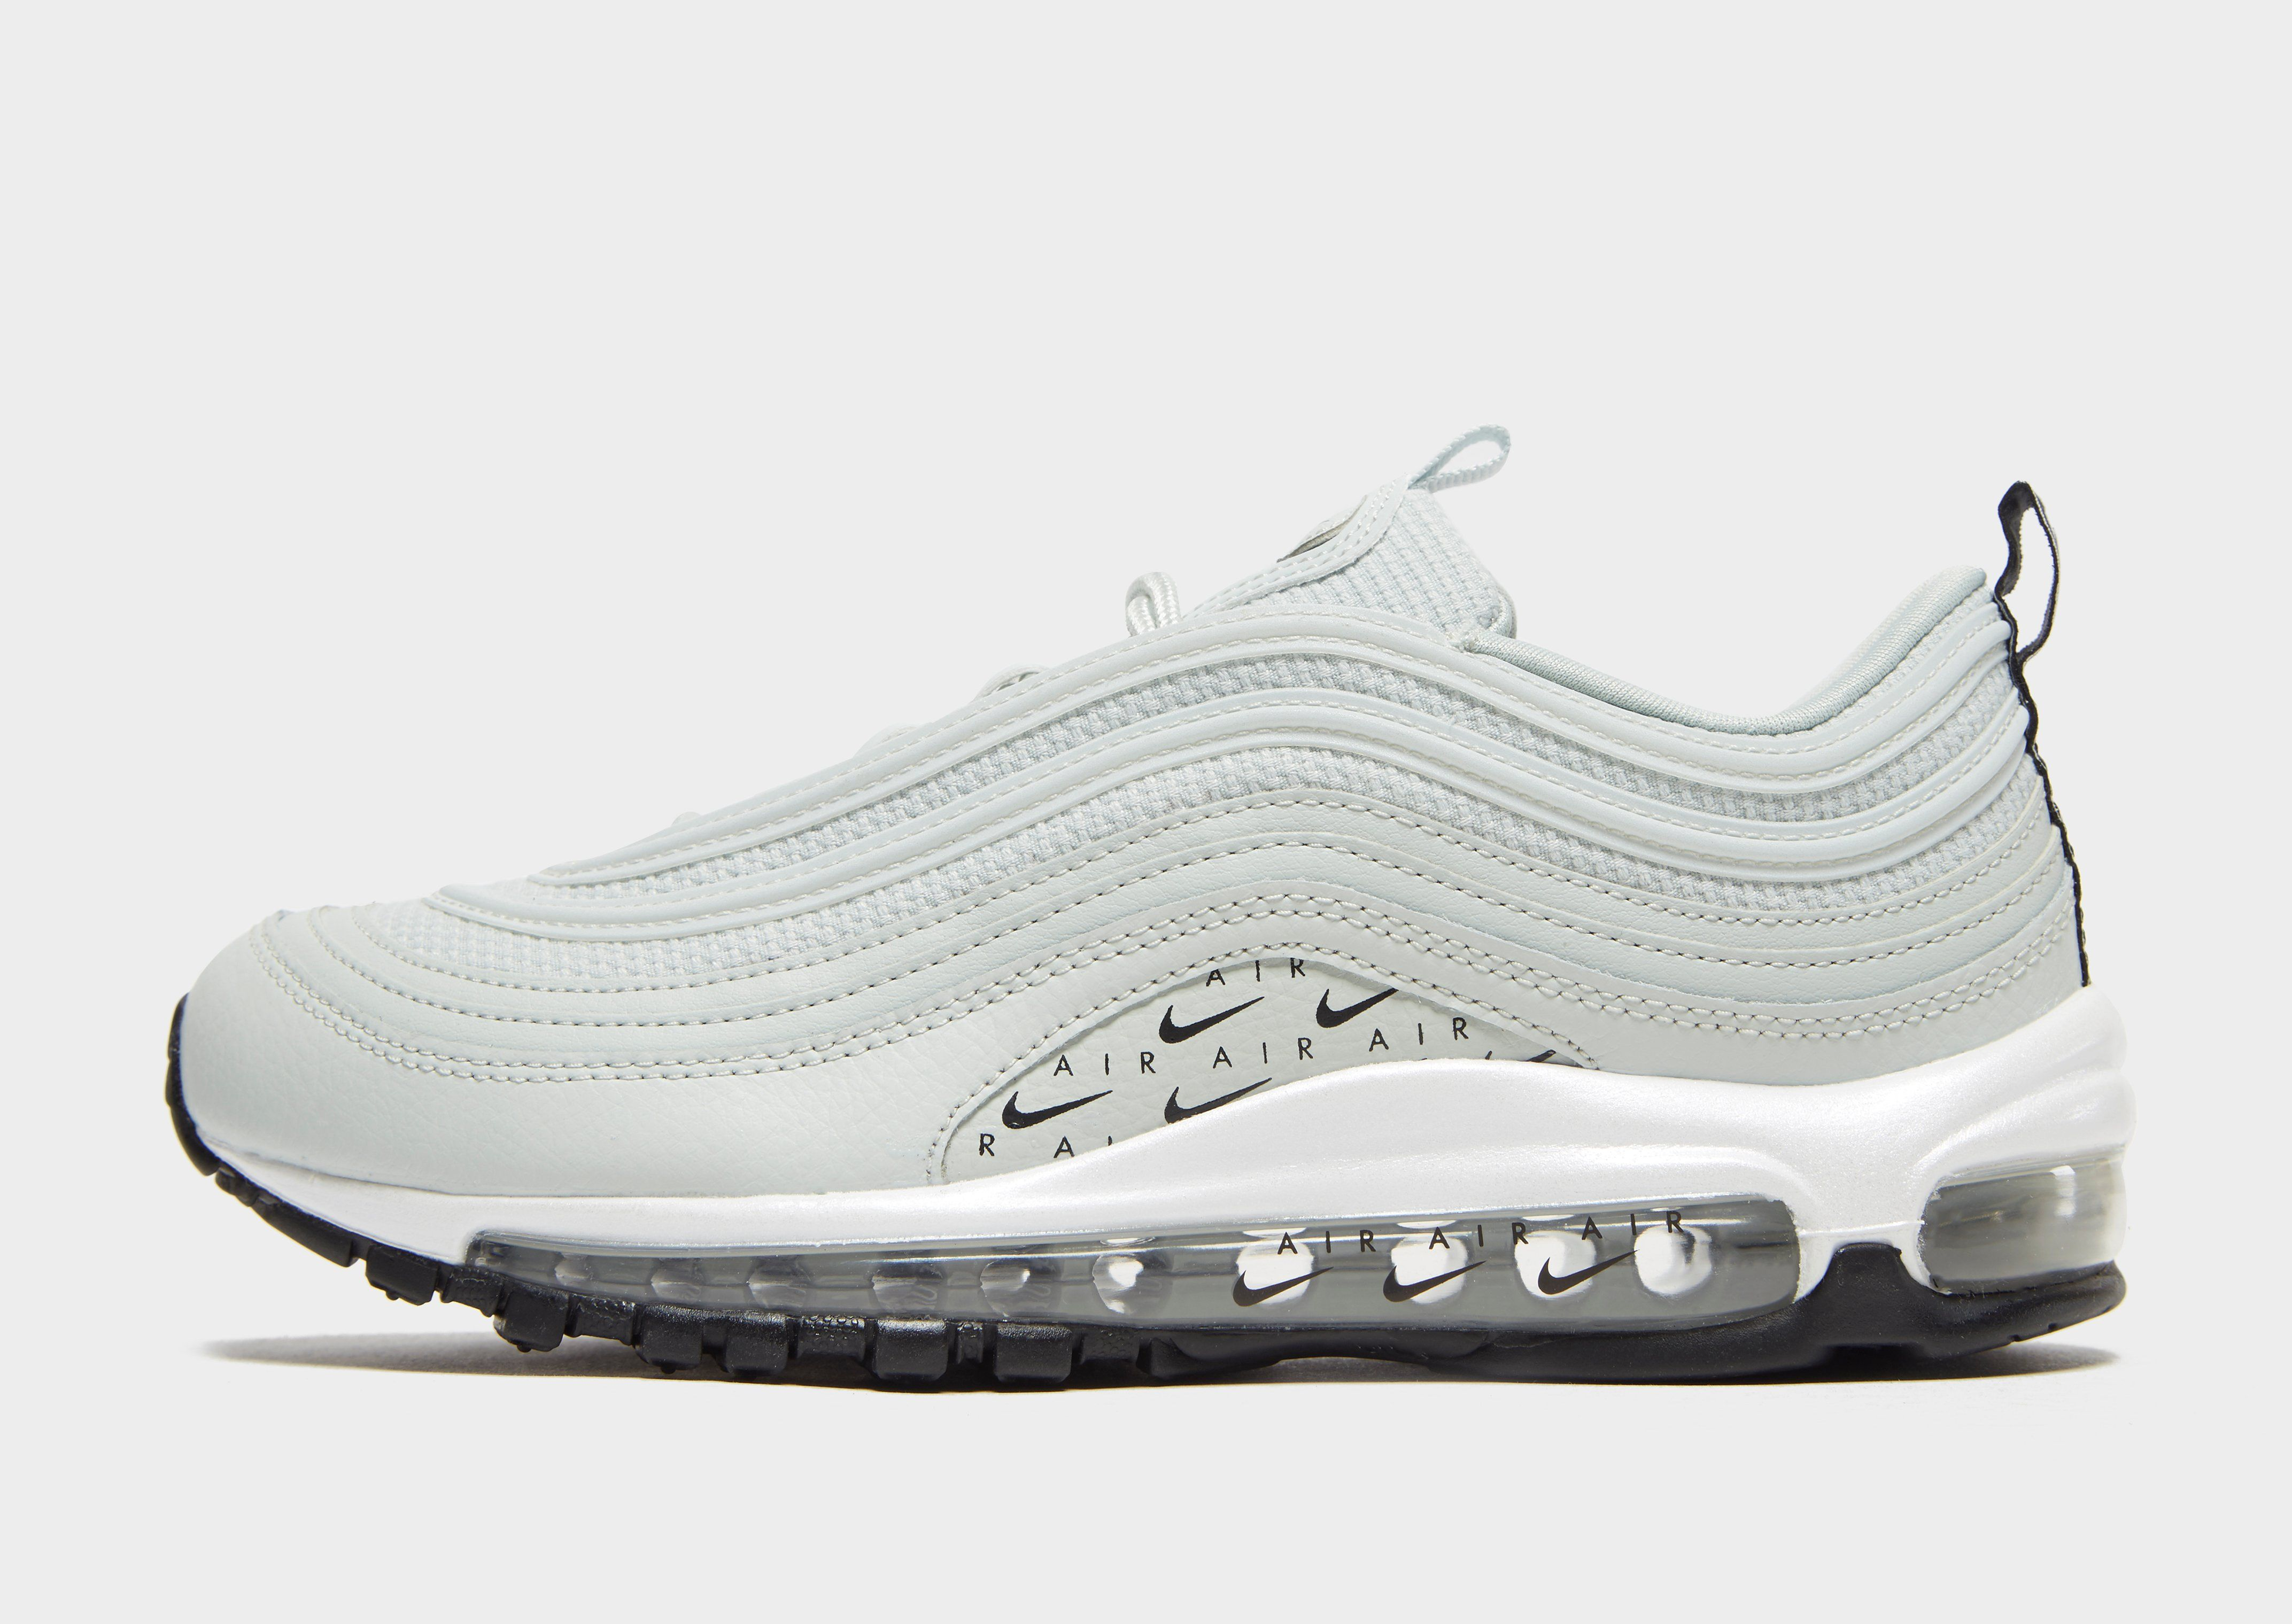 NIKE Nike Air Max 97 LX Overbranded Women's Shoe | JD Sports